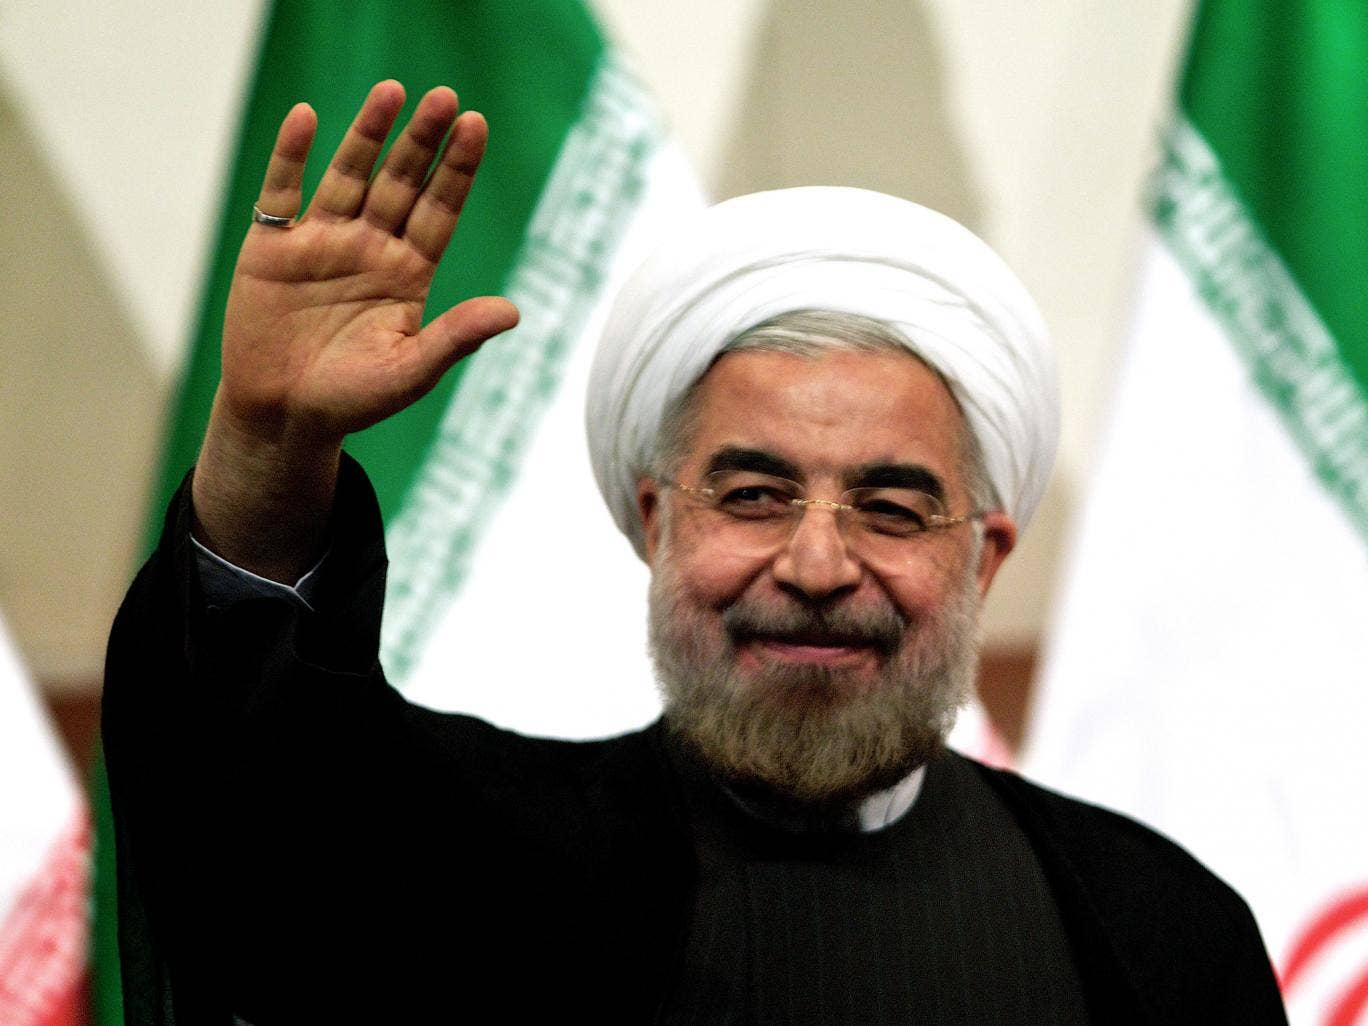 President Hassan Rouhani was elected in 2013 and has styled himself as a reformer